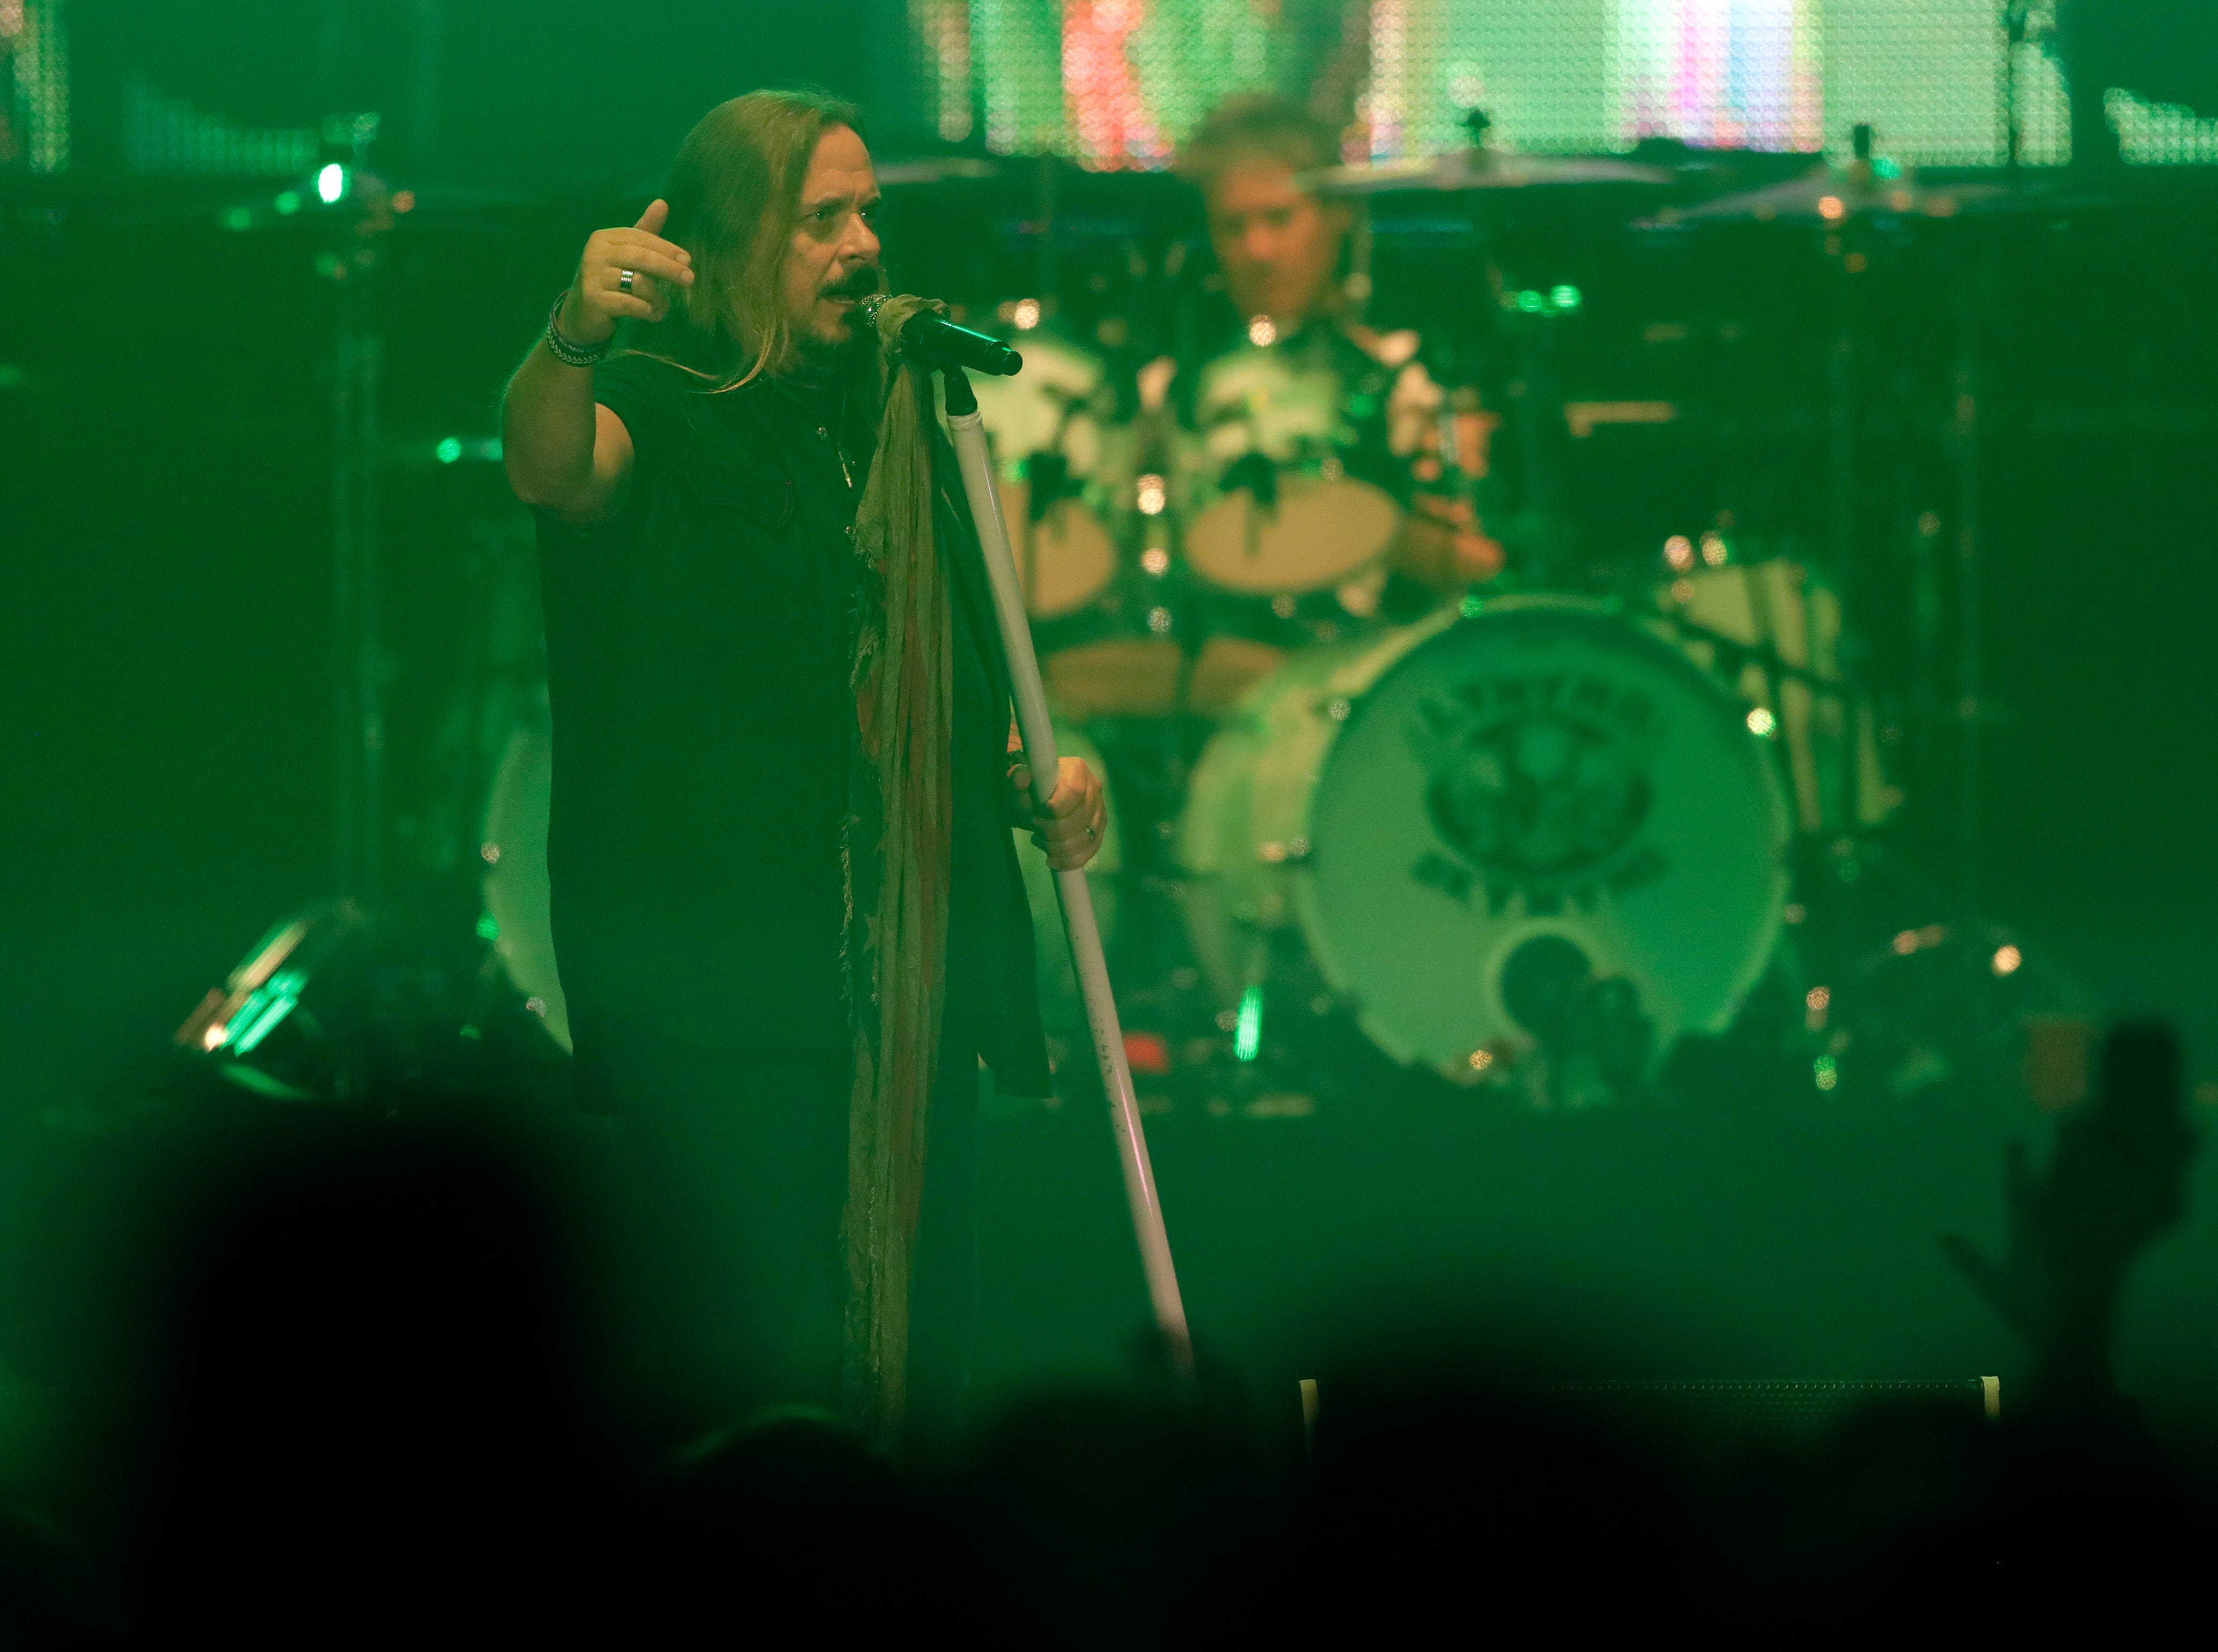 Lynyrd Skynyrd performs Oct. 19, 2018 at the Resch Center in Ashwaubenon, Wis. as part of the southern rock band's Last of the Street Survivors Farewell Tour.